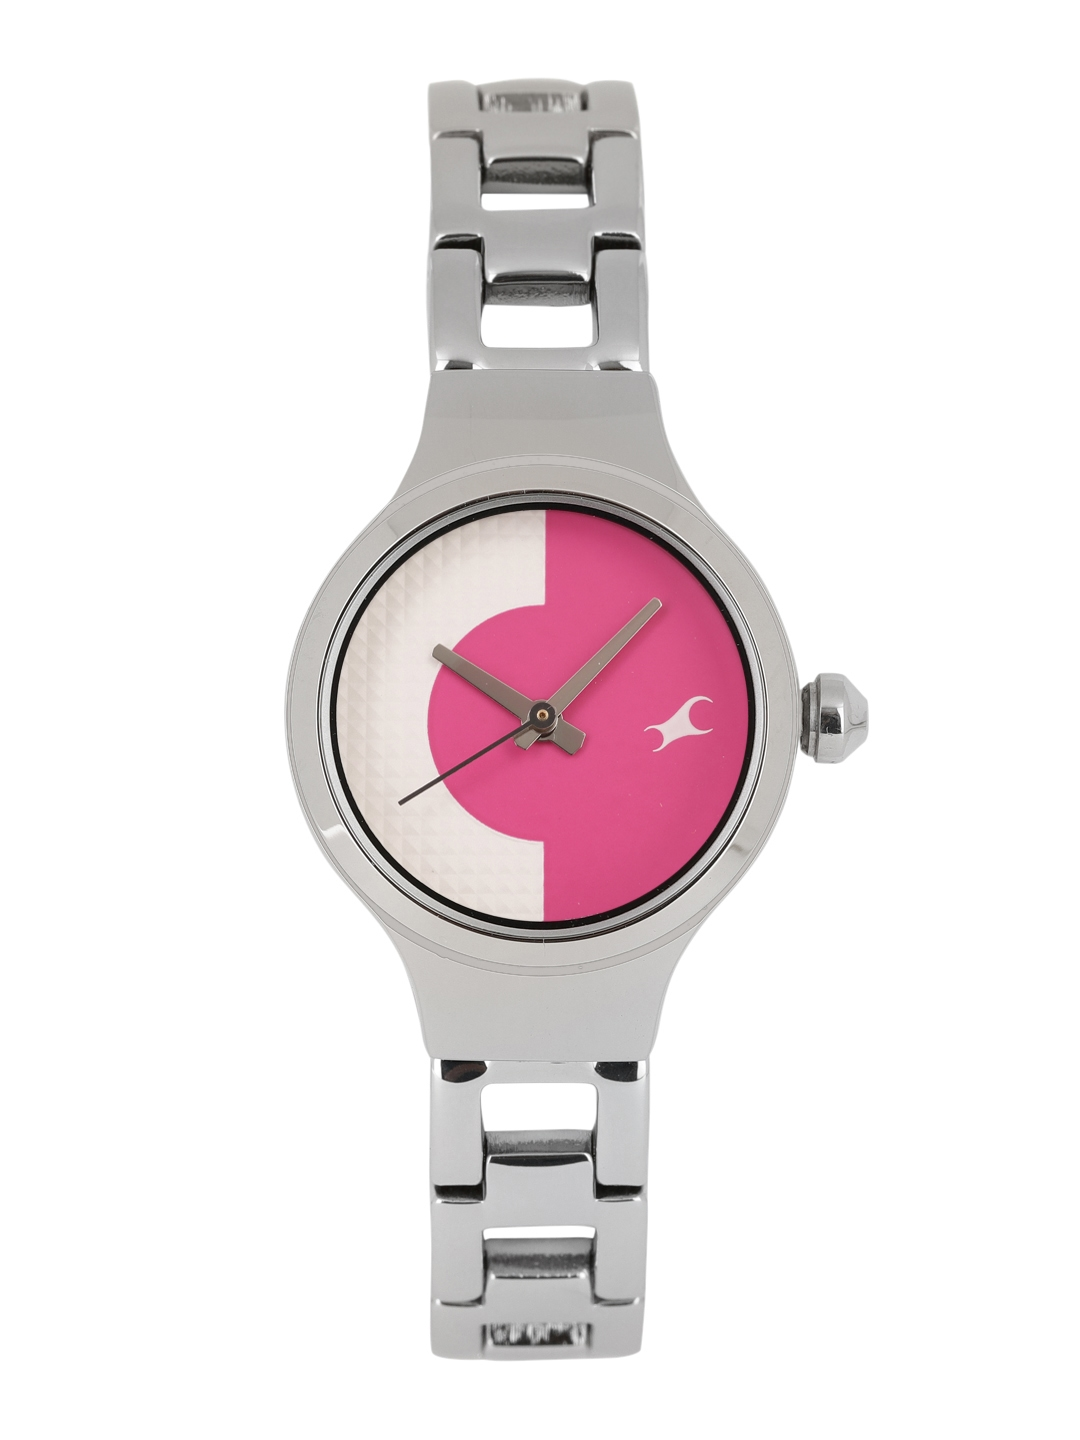 052d3a5d3 Buy Fastrack Women Pink Analogue Watch NK6134SM02 - Watches for ...